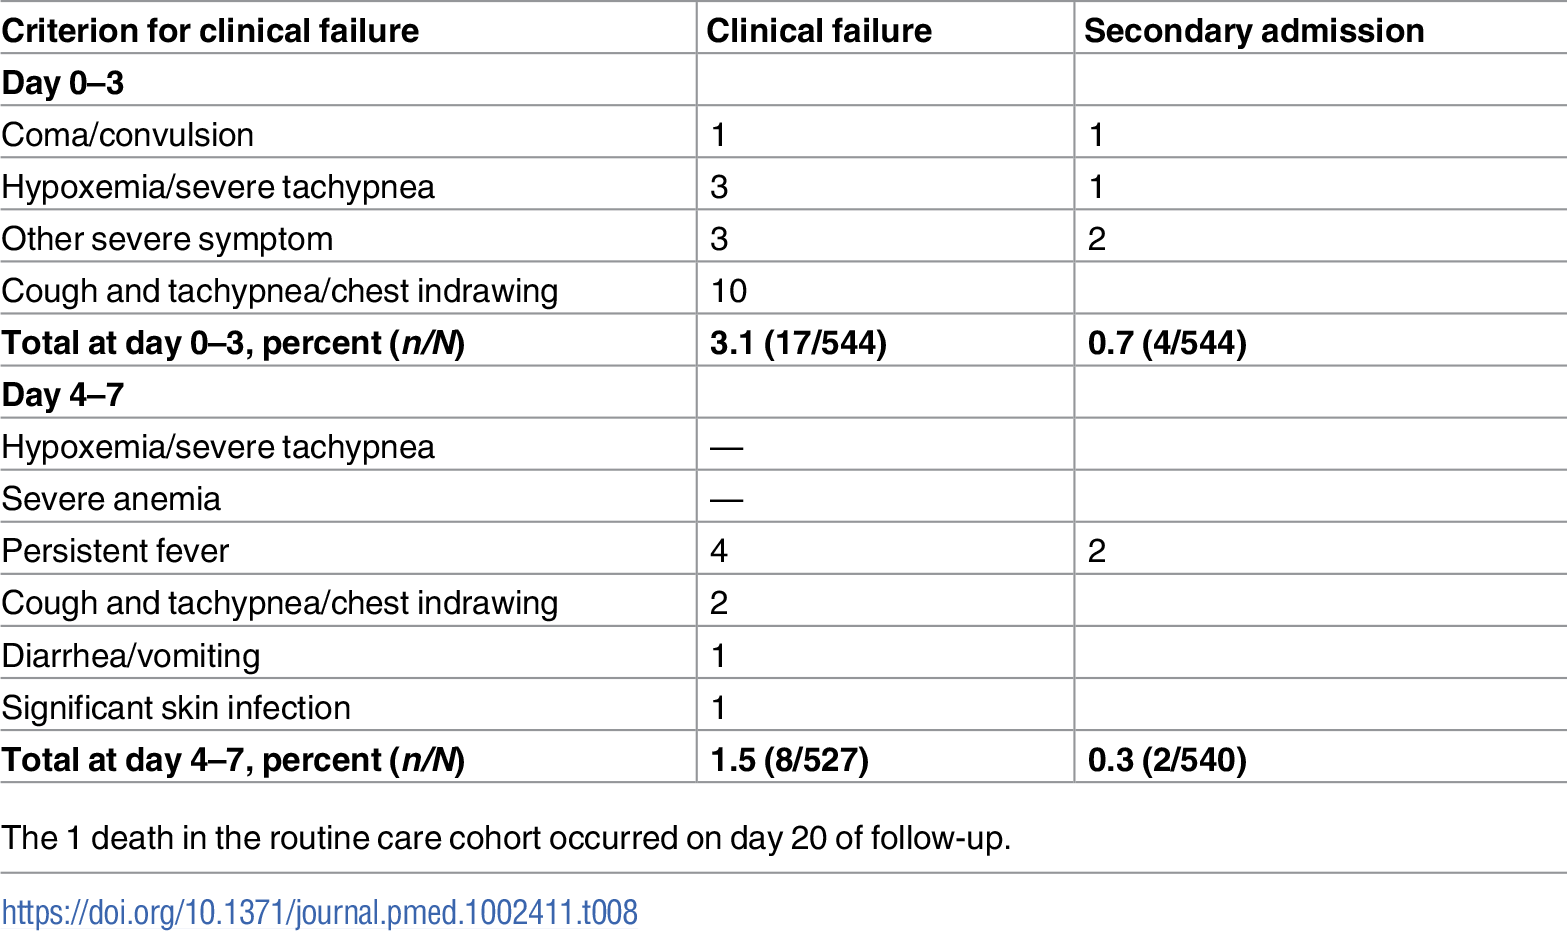 Details of clinical failure by day 7 in the routine care cohort.